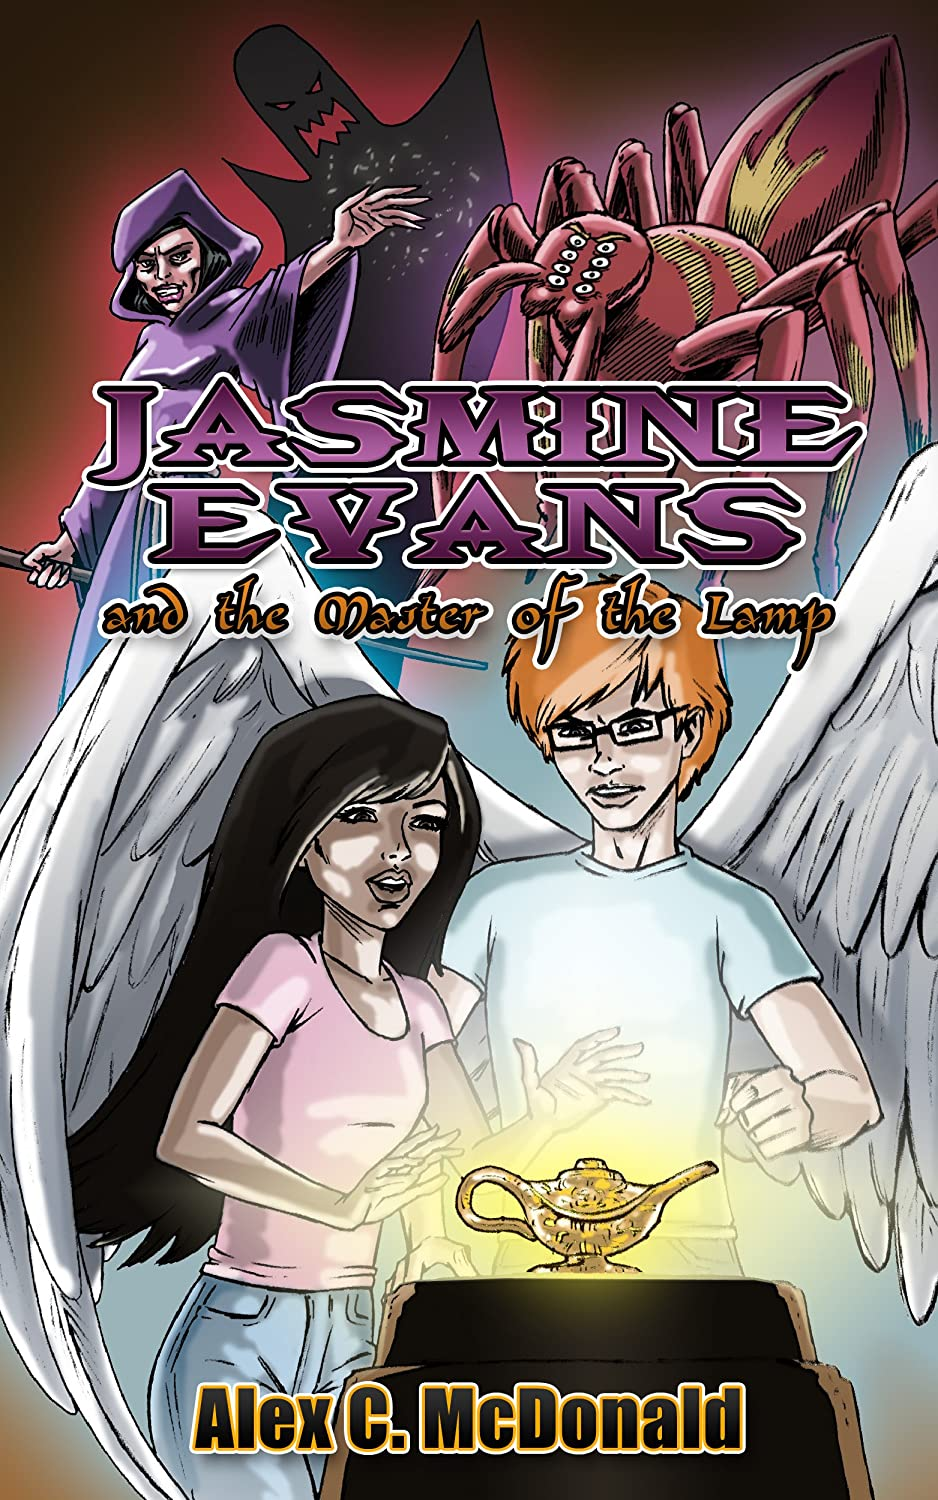 Jasmine Evans and the Master of the Lamp: A genie magic book by Alex C. McDonald